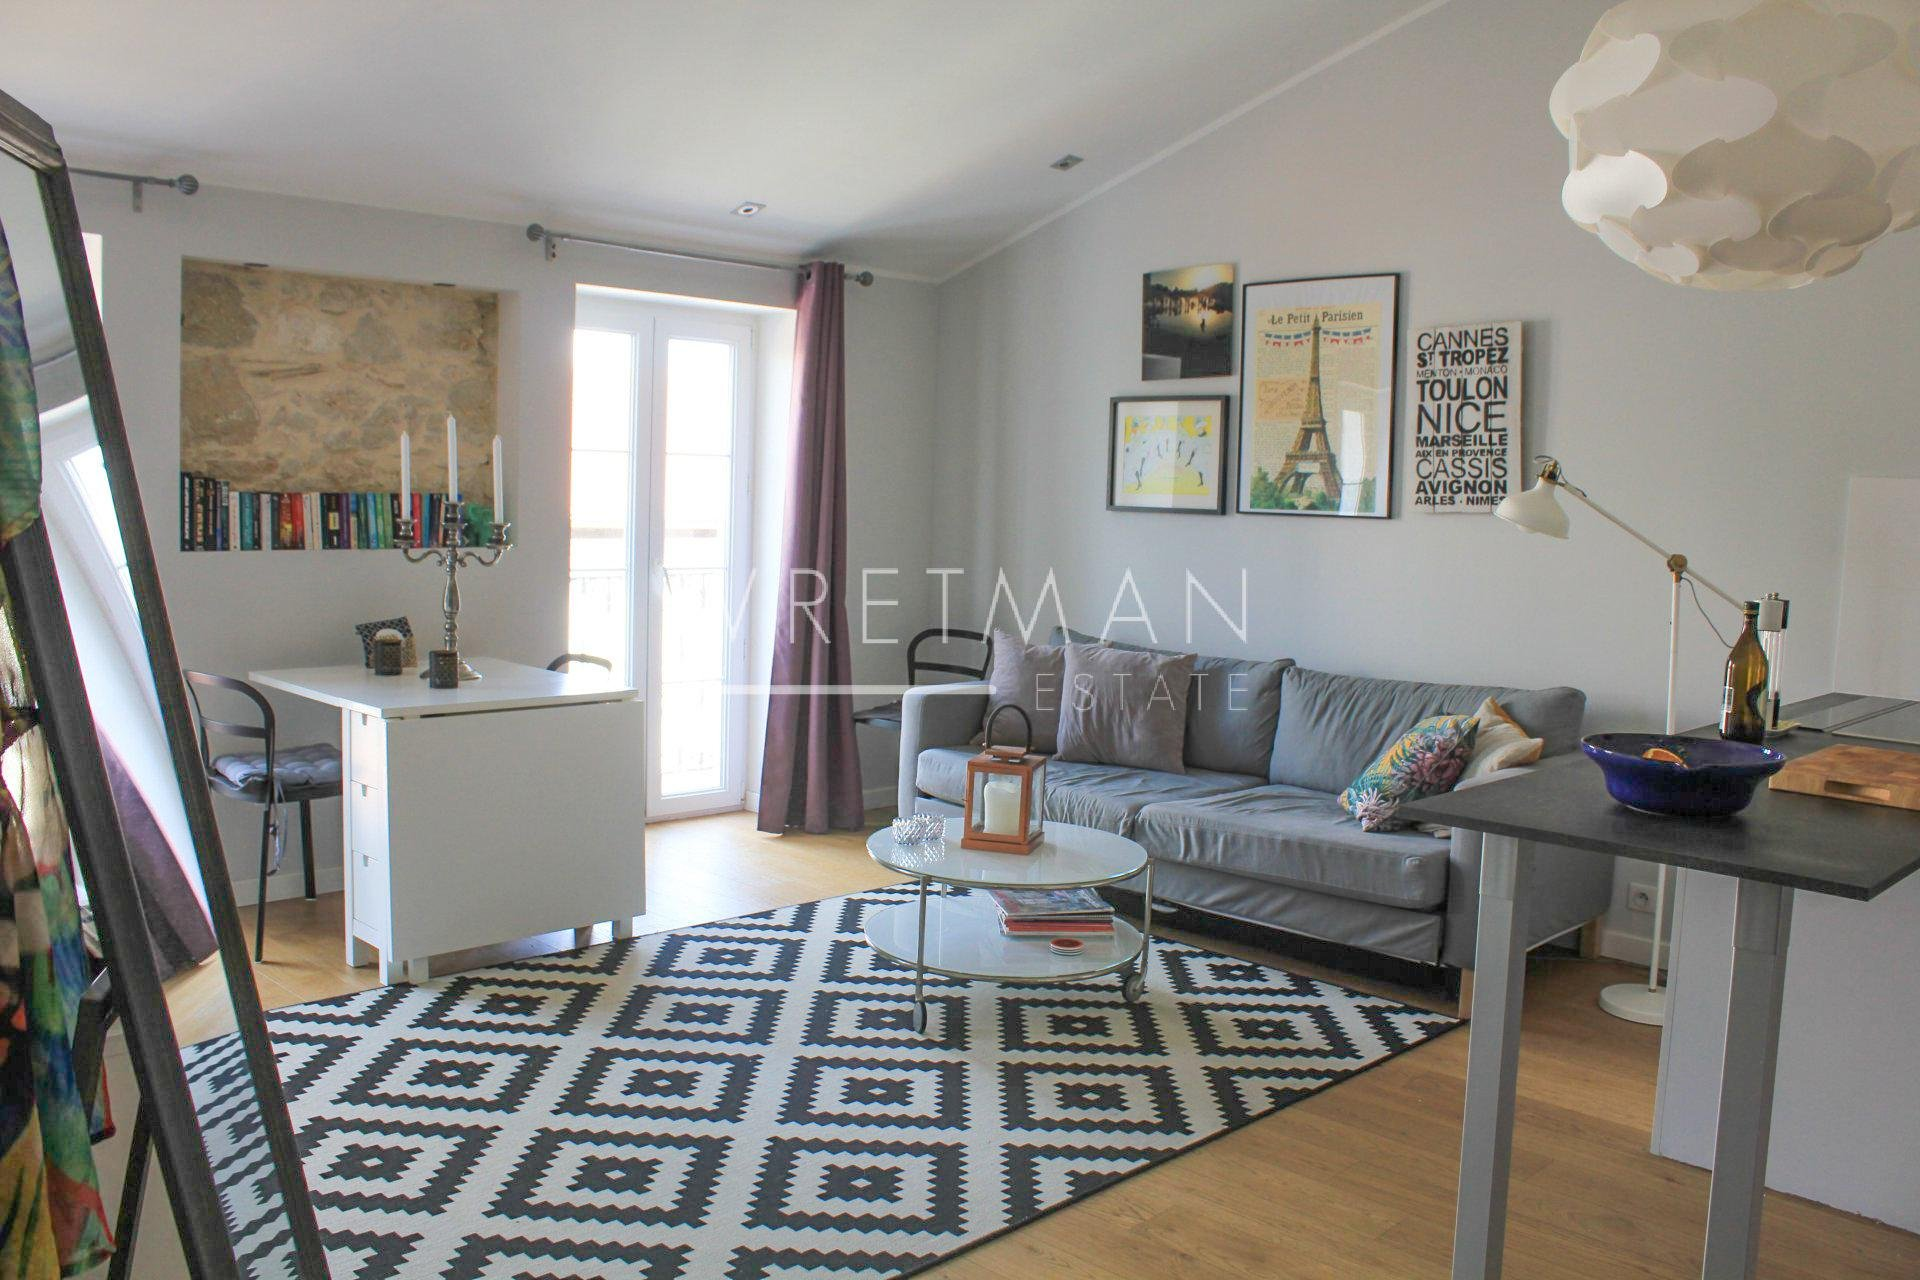 Stylish 1-bedroom apartment with balcony - Nice Carré d'